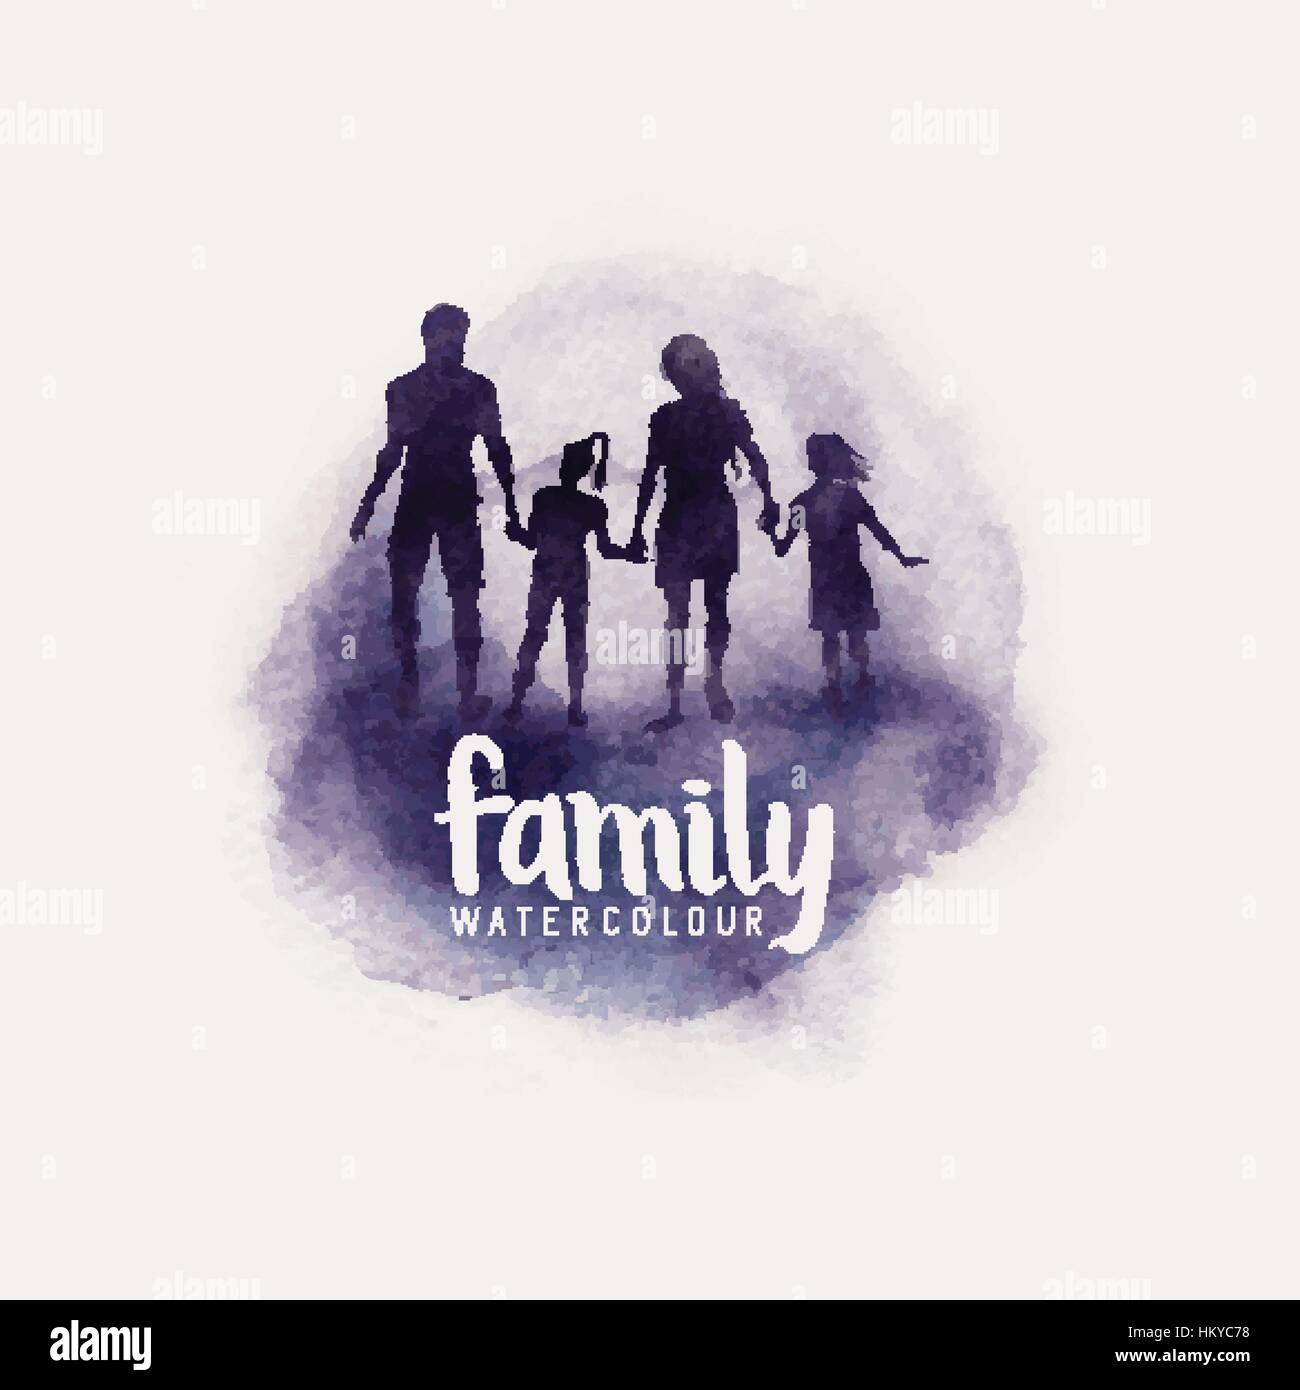 watercolour style family, Parents and children walking together. vector illustration - Stock Vector